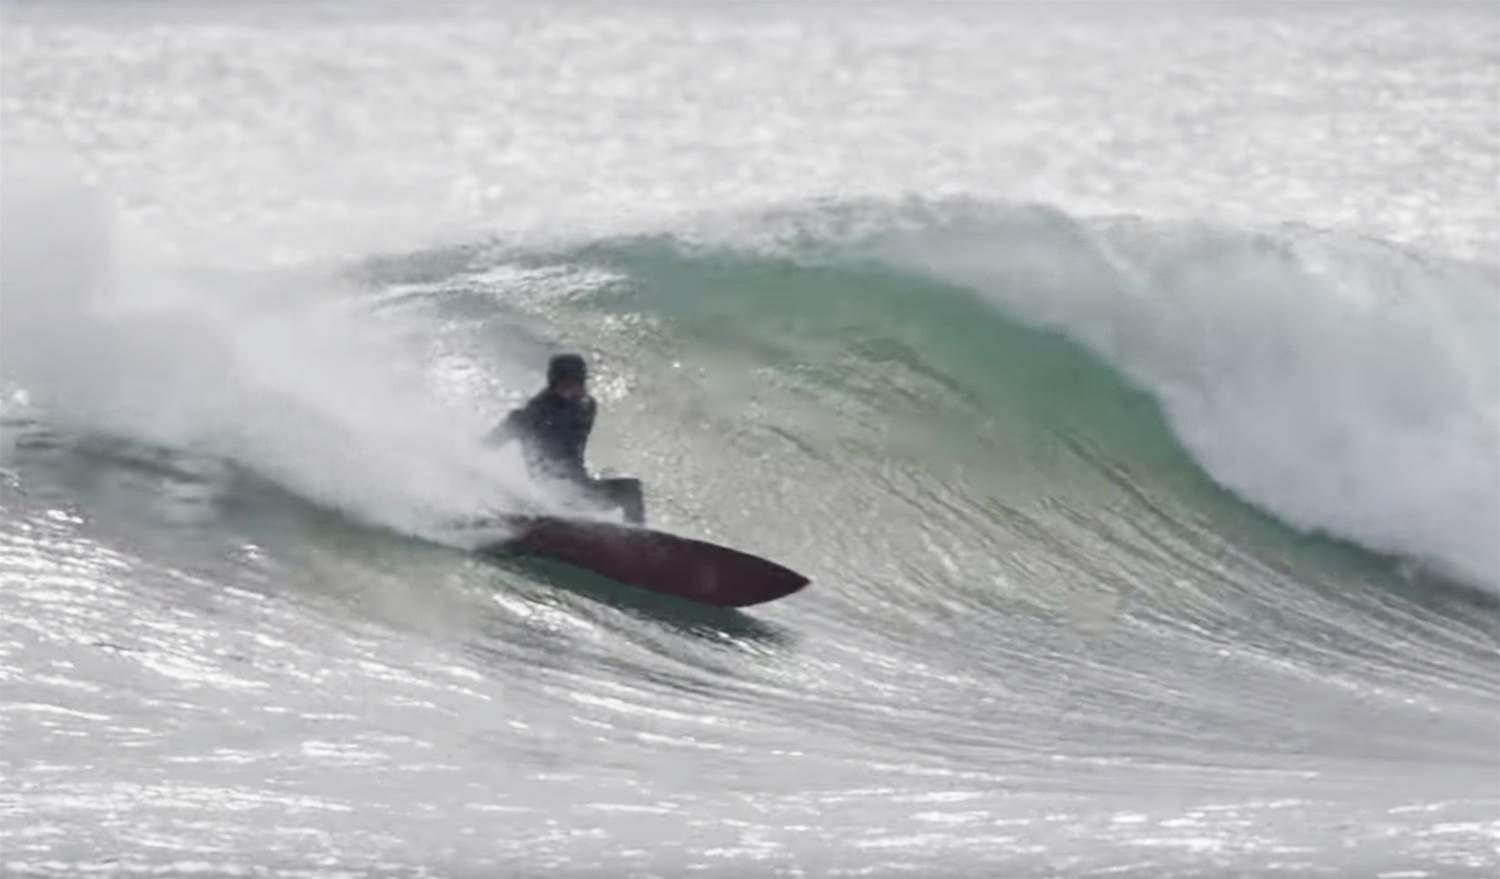 Dylan Graves Surfs Firing Lake Superior